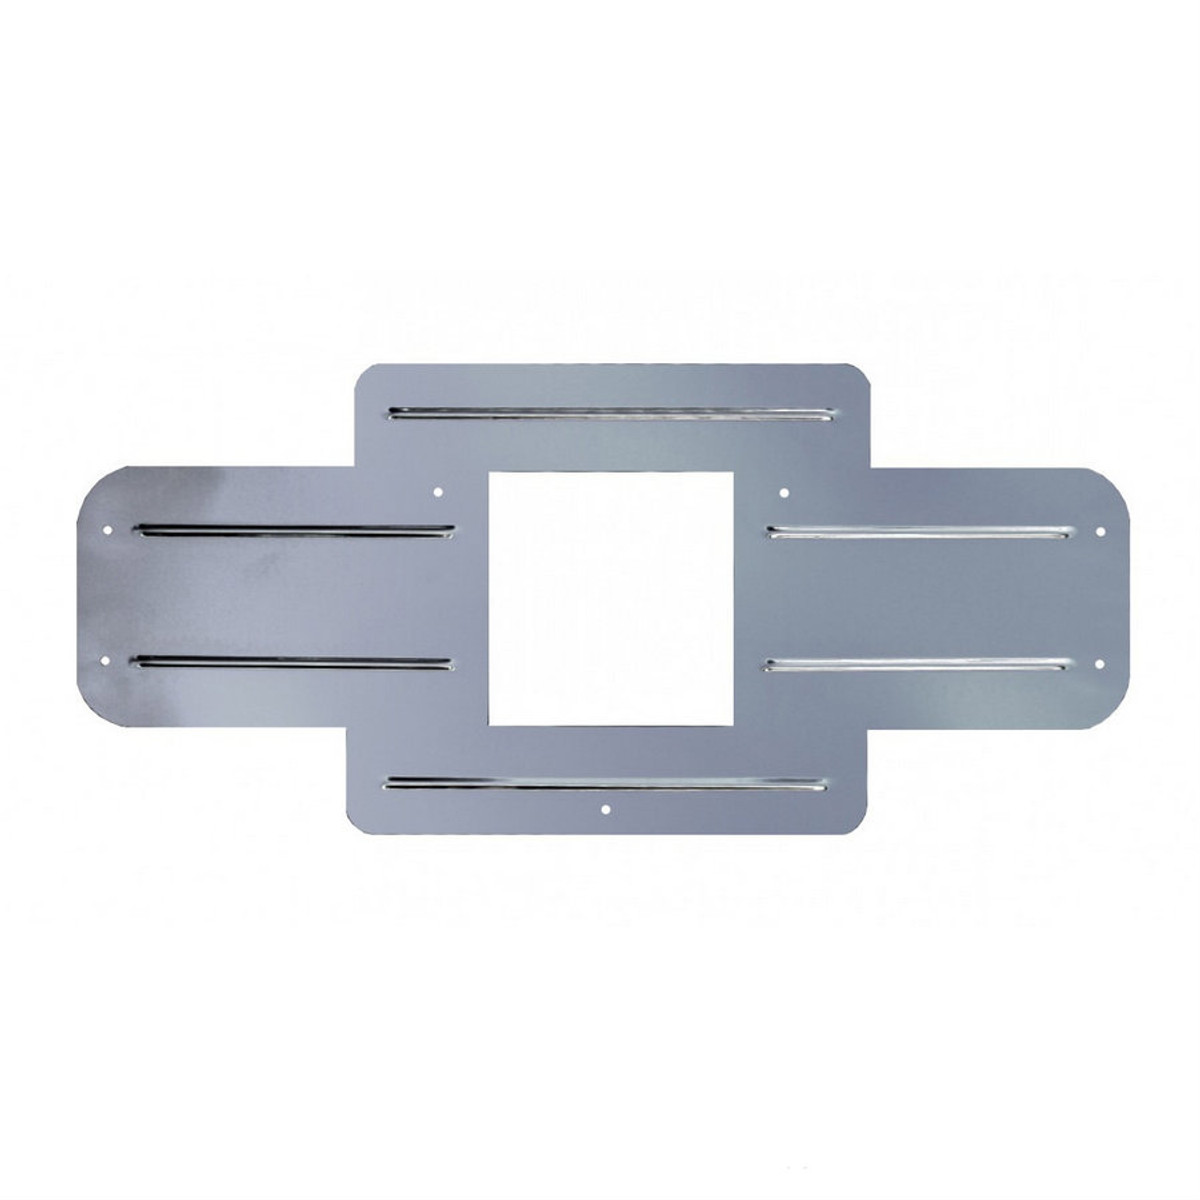 Wilson 901125 In-Ceiling Antenna Mount, main image